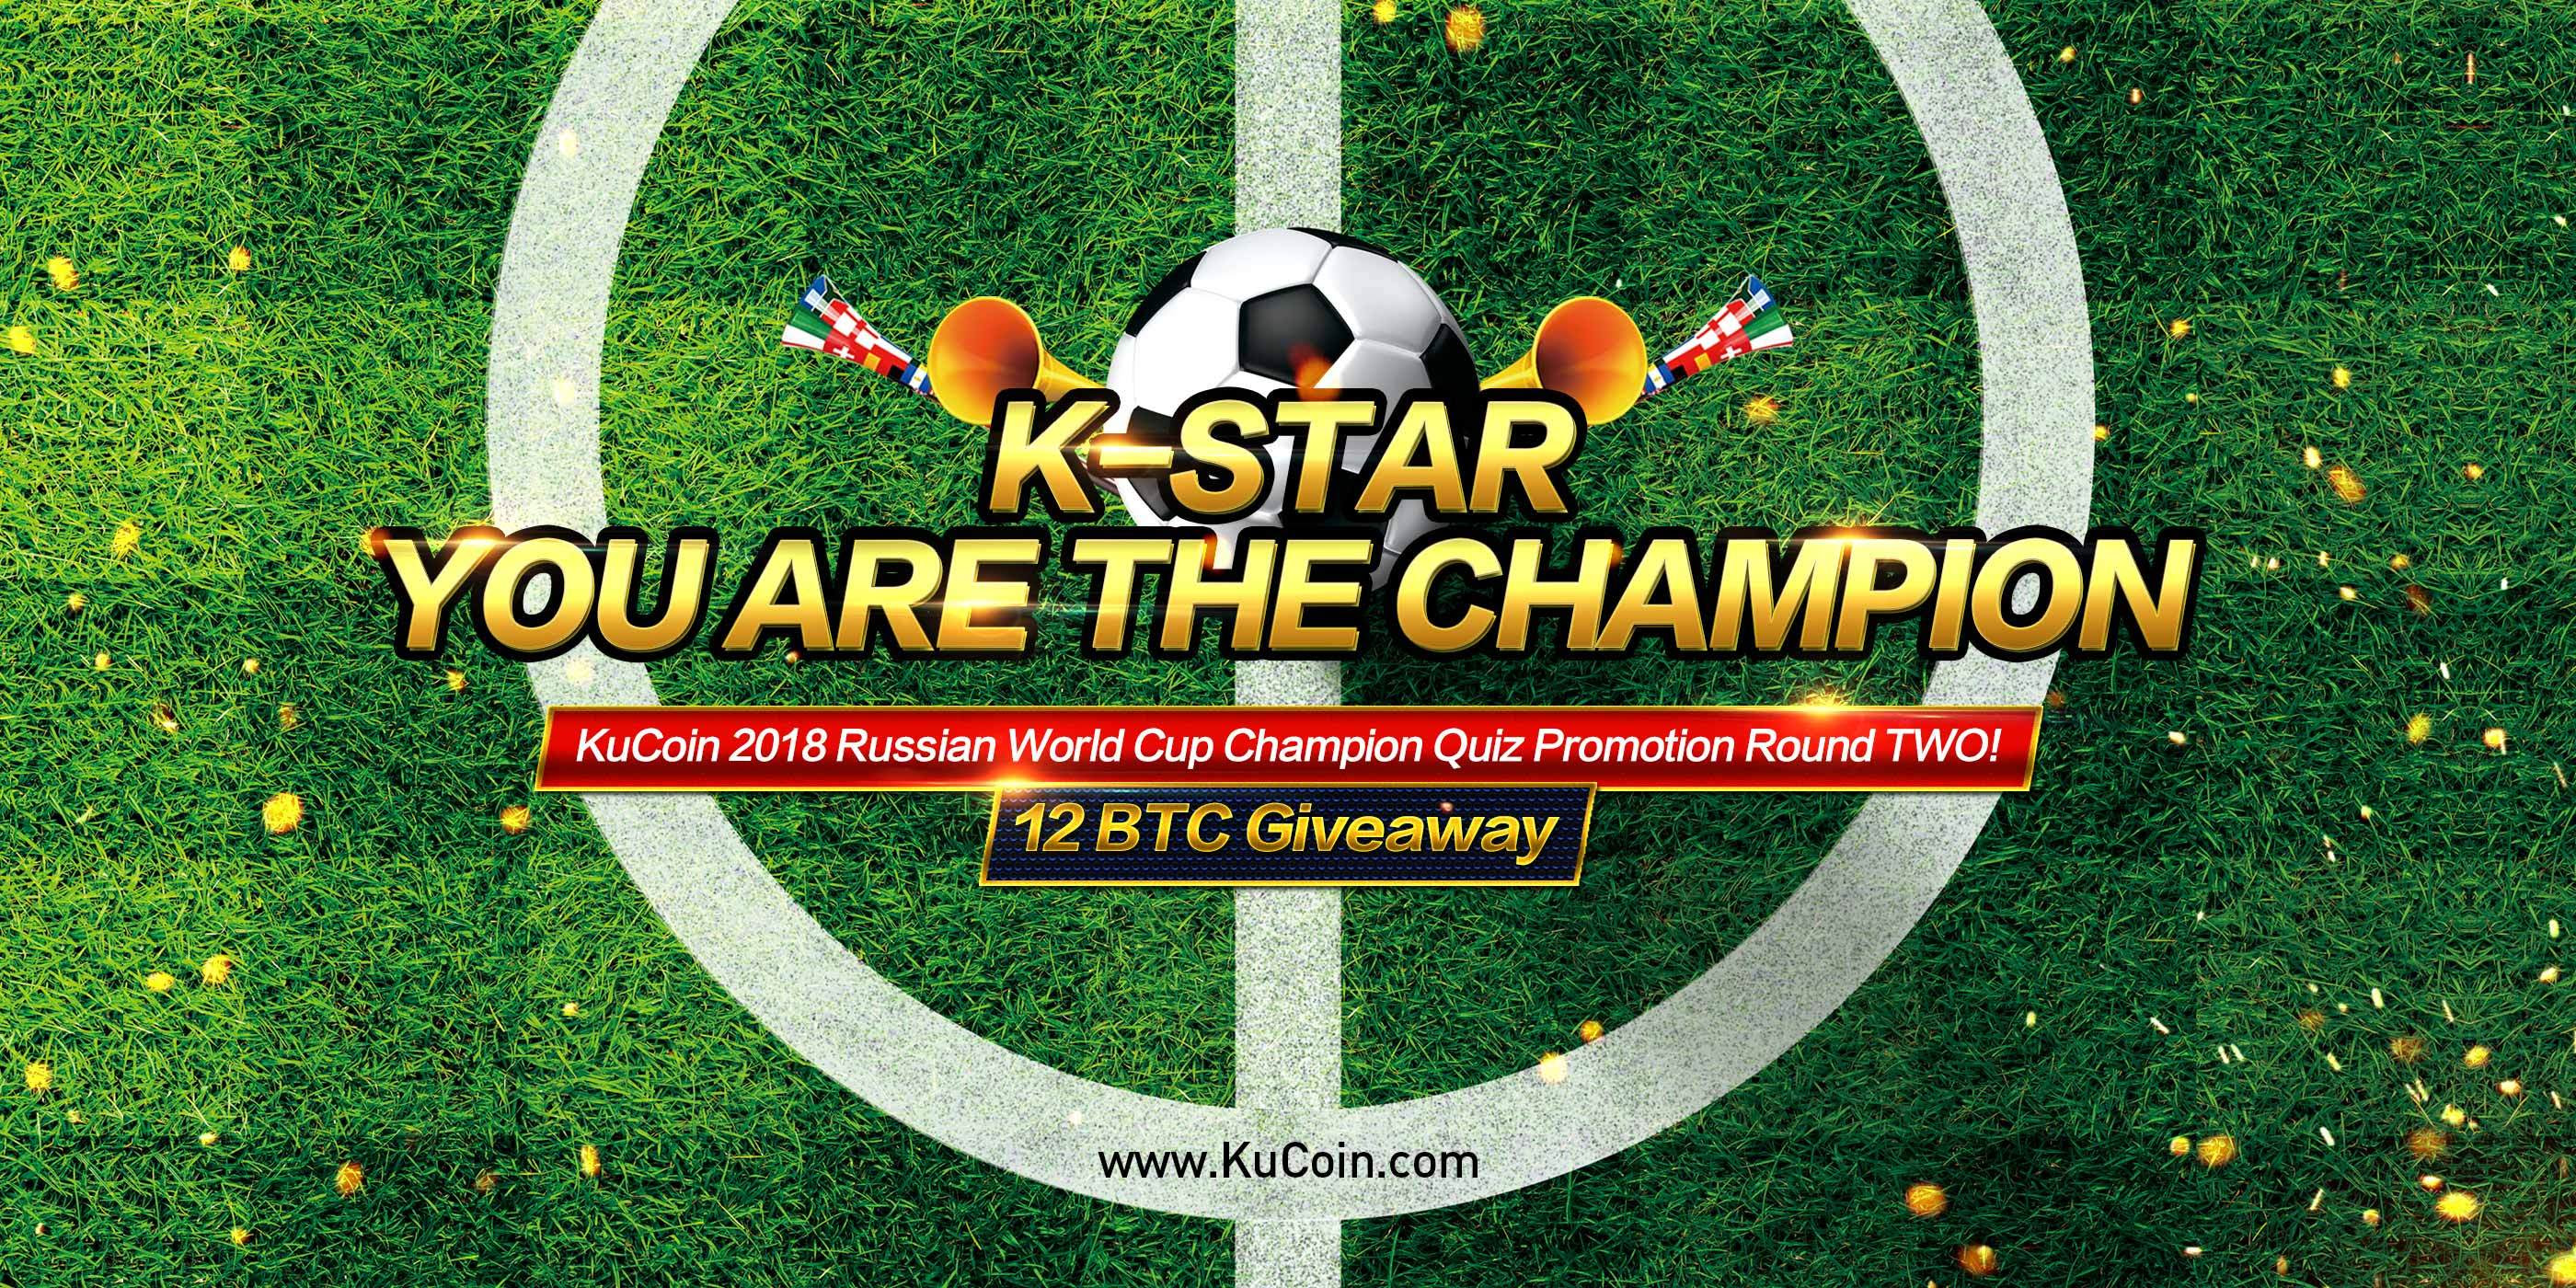 KuCoin 2018 FIFA World Cup Russia Quiz Promotion Round TWO! Join us and win 12 BTC!